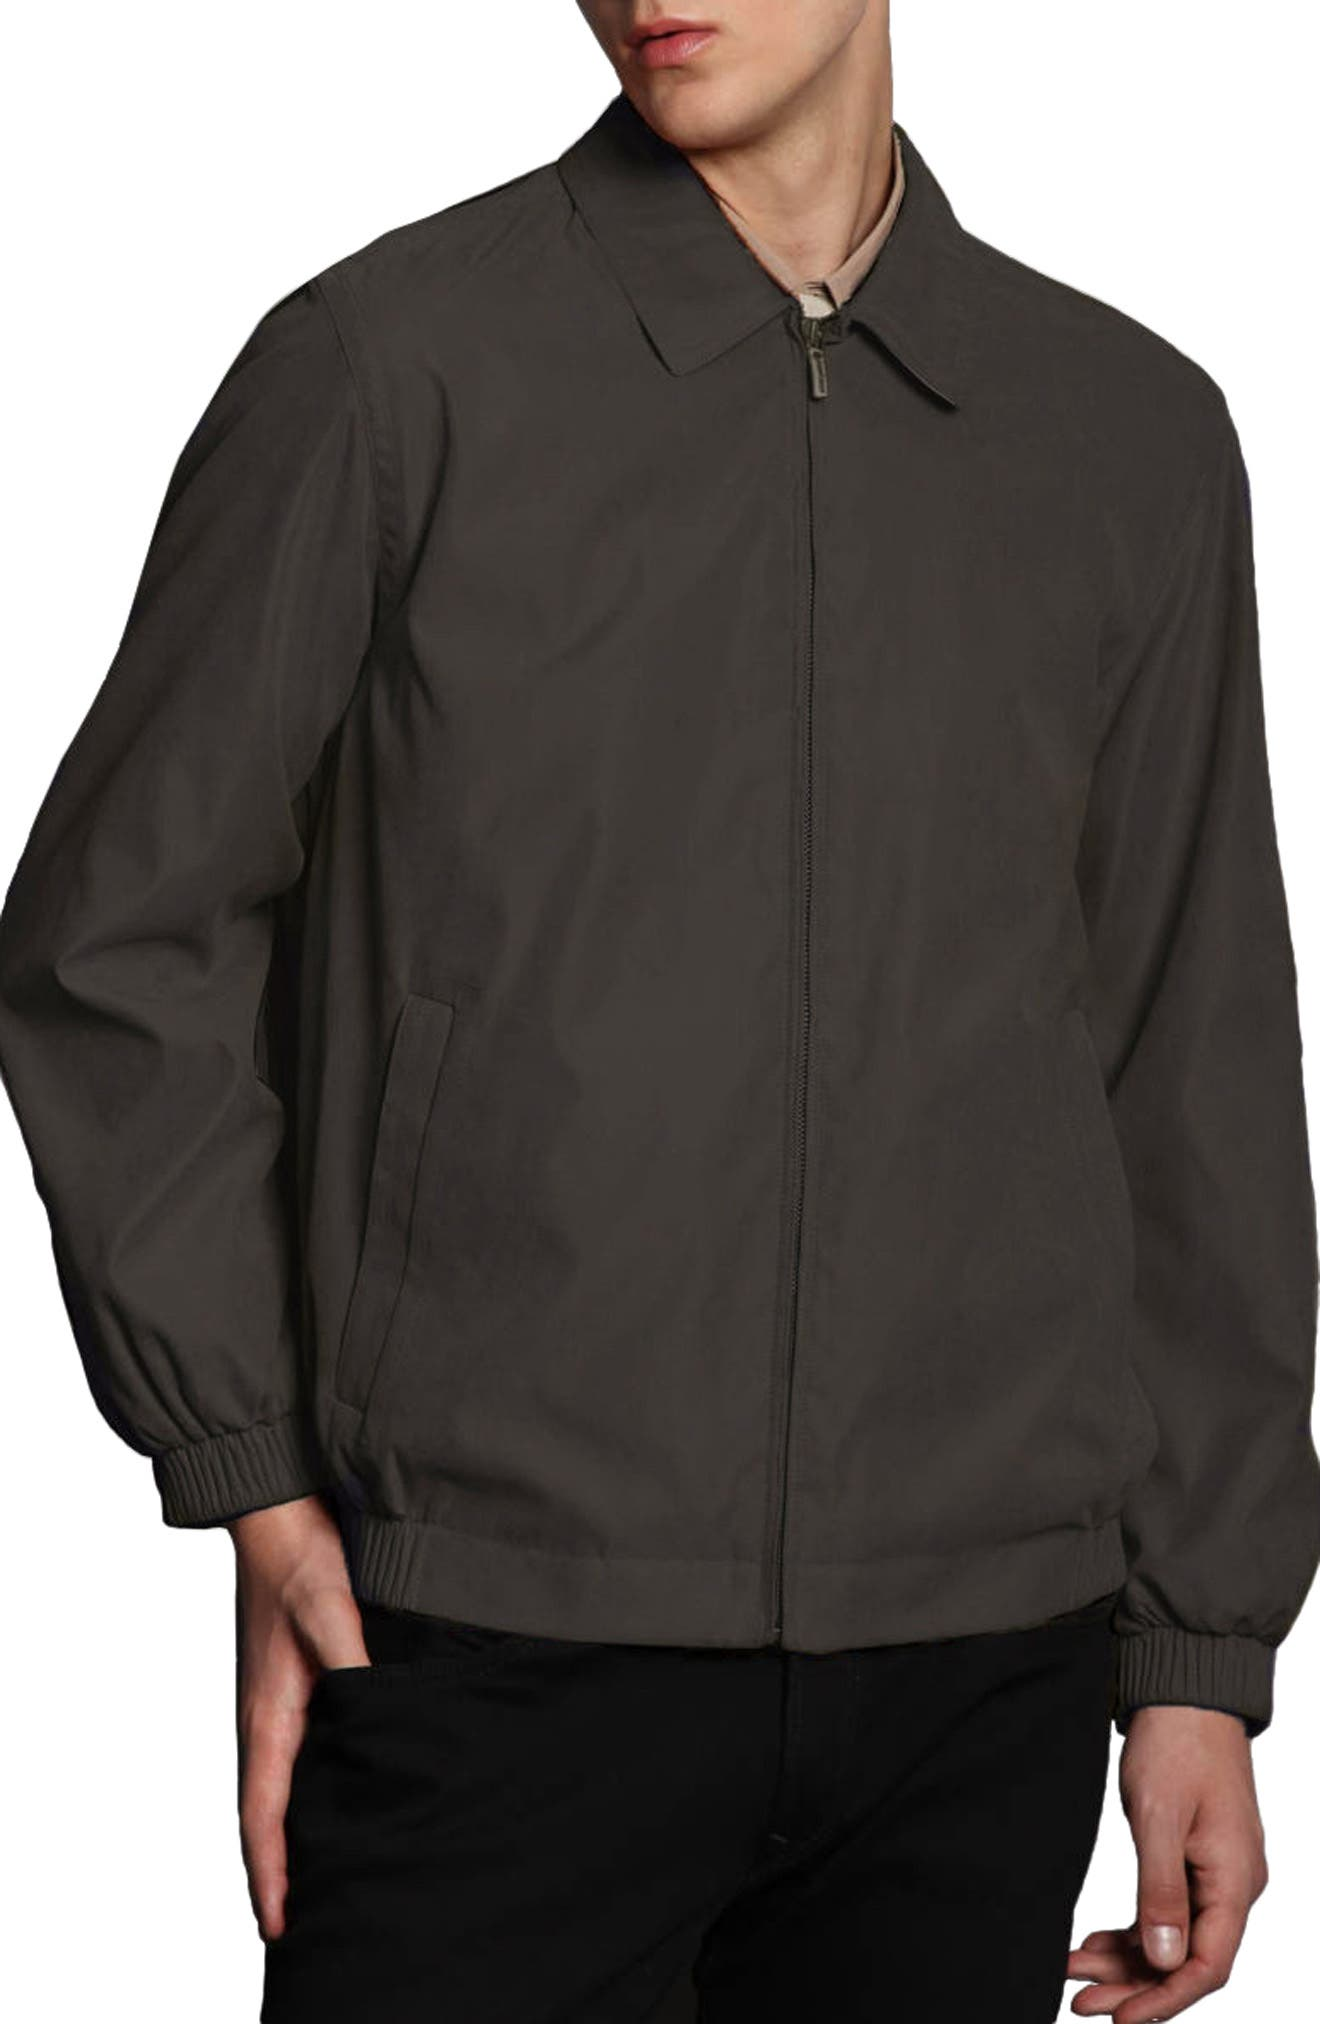 RAINFOREST 'Microseta' Lightweight Golf Jacket